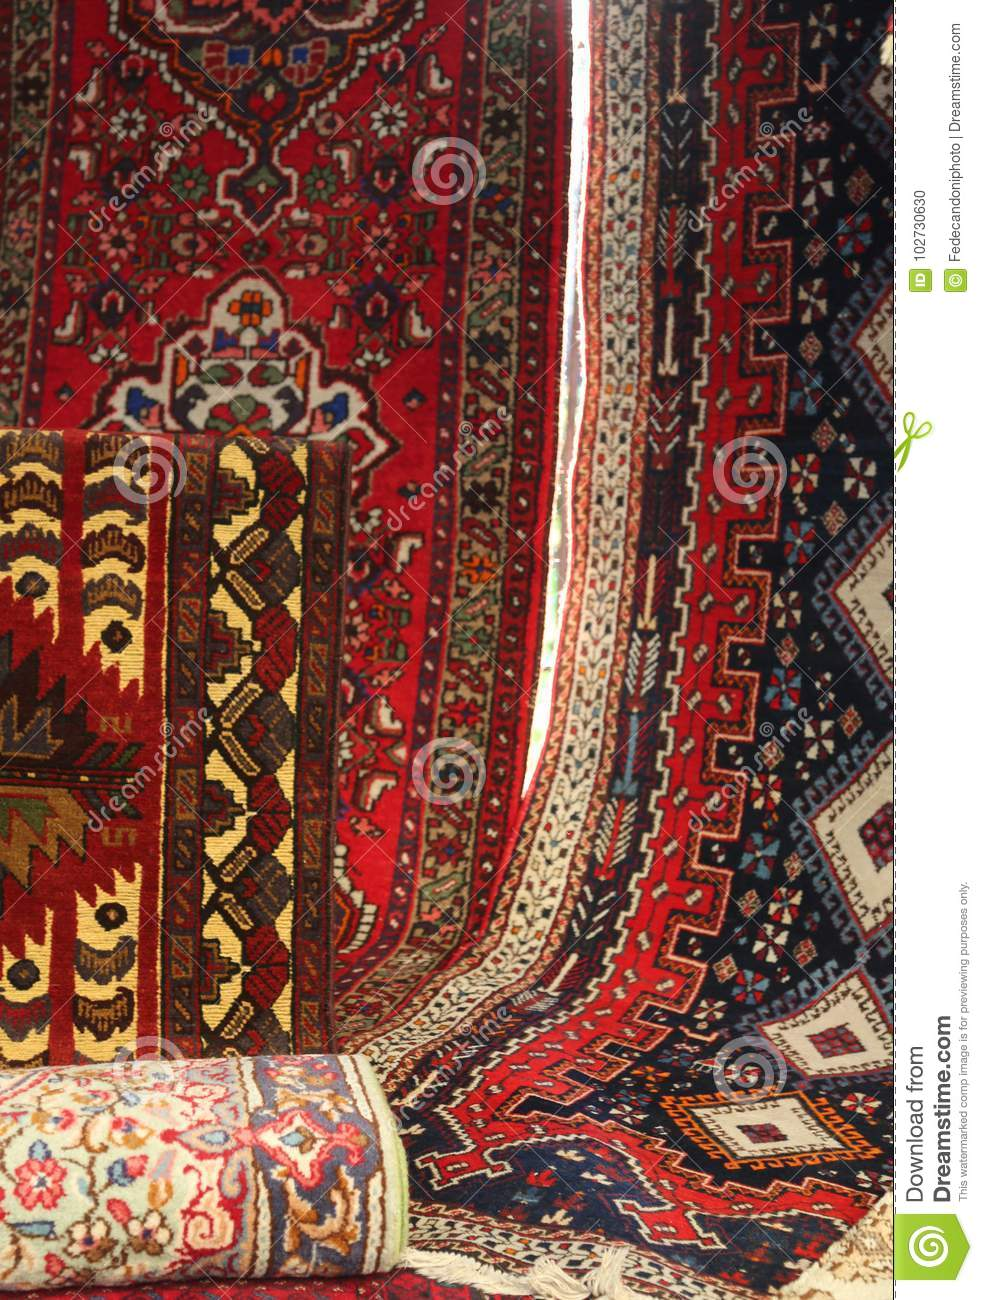 Asian Carpet Asian Rugs For Sale On The Stand Of Amarket Stock Photo Image Of